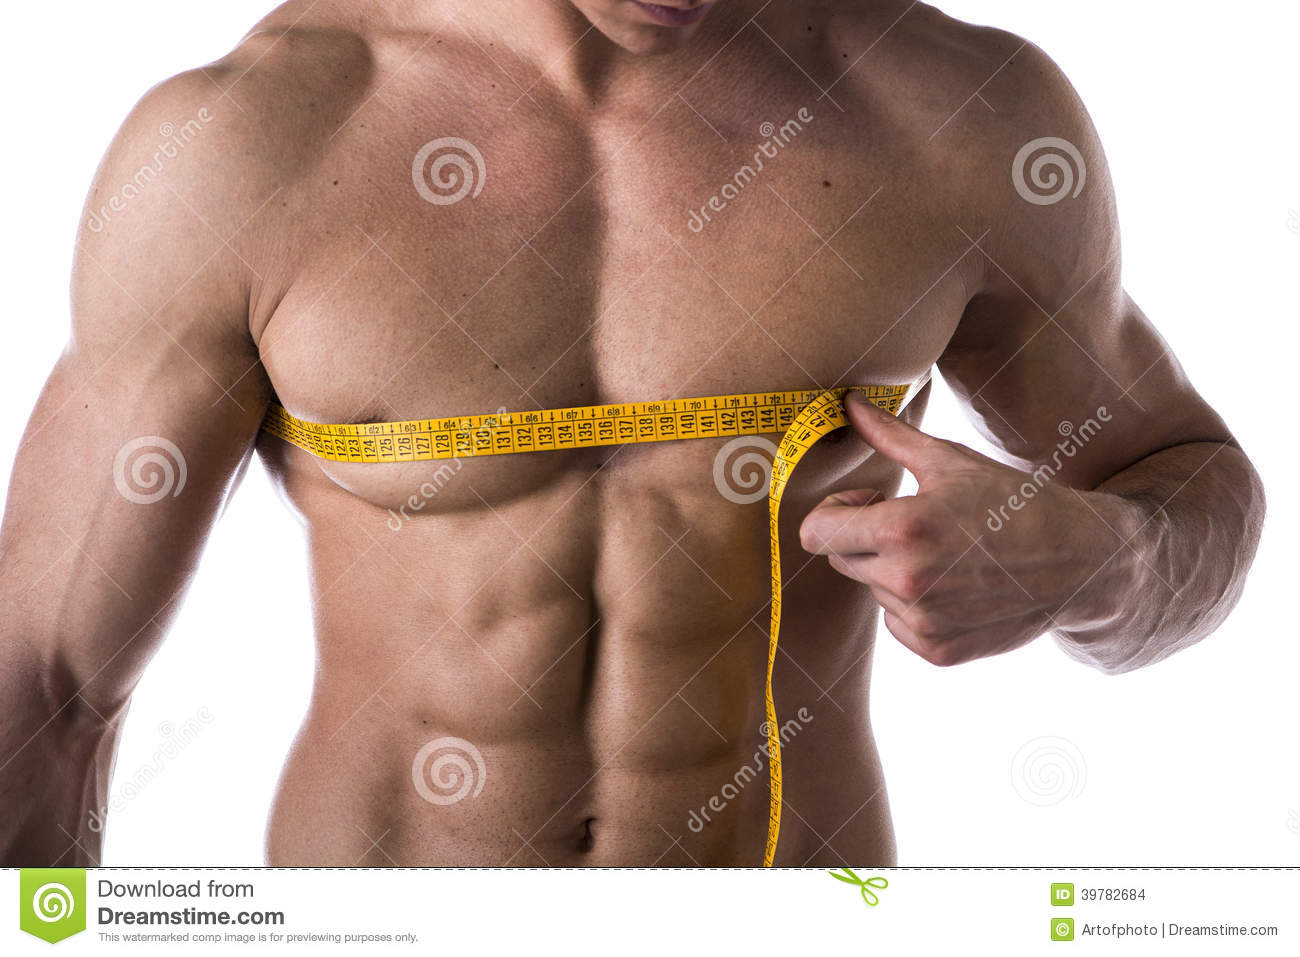 Taking Measurements: Chest: Take measurement up under the arms and around chest. Sleeves: Measure from the base of the neck, across shoulder, down arm to slightly bent elbow and up to wrist.